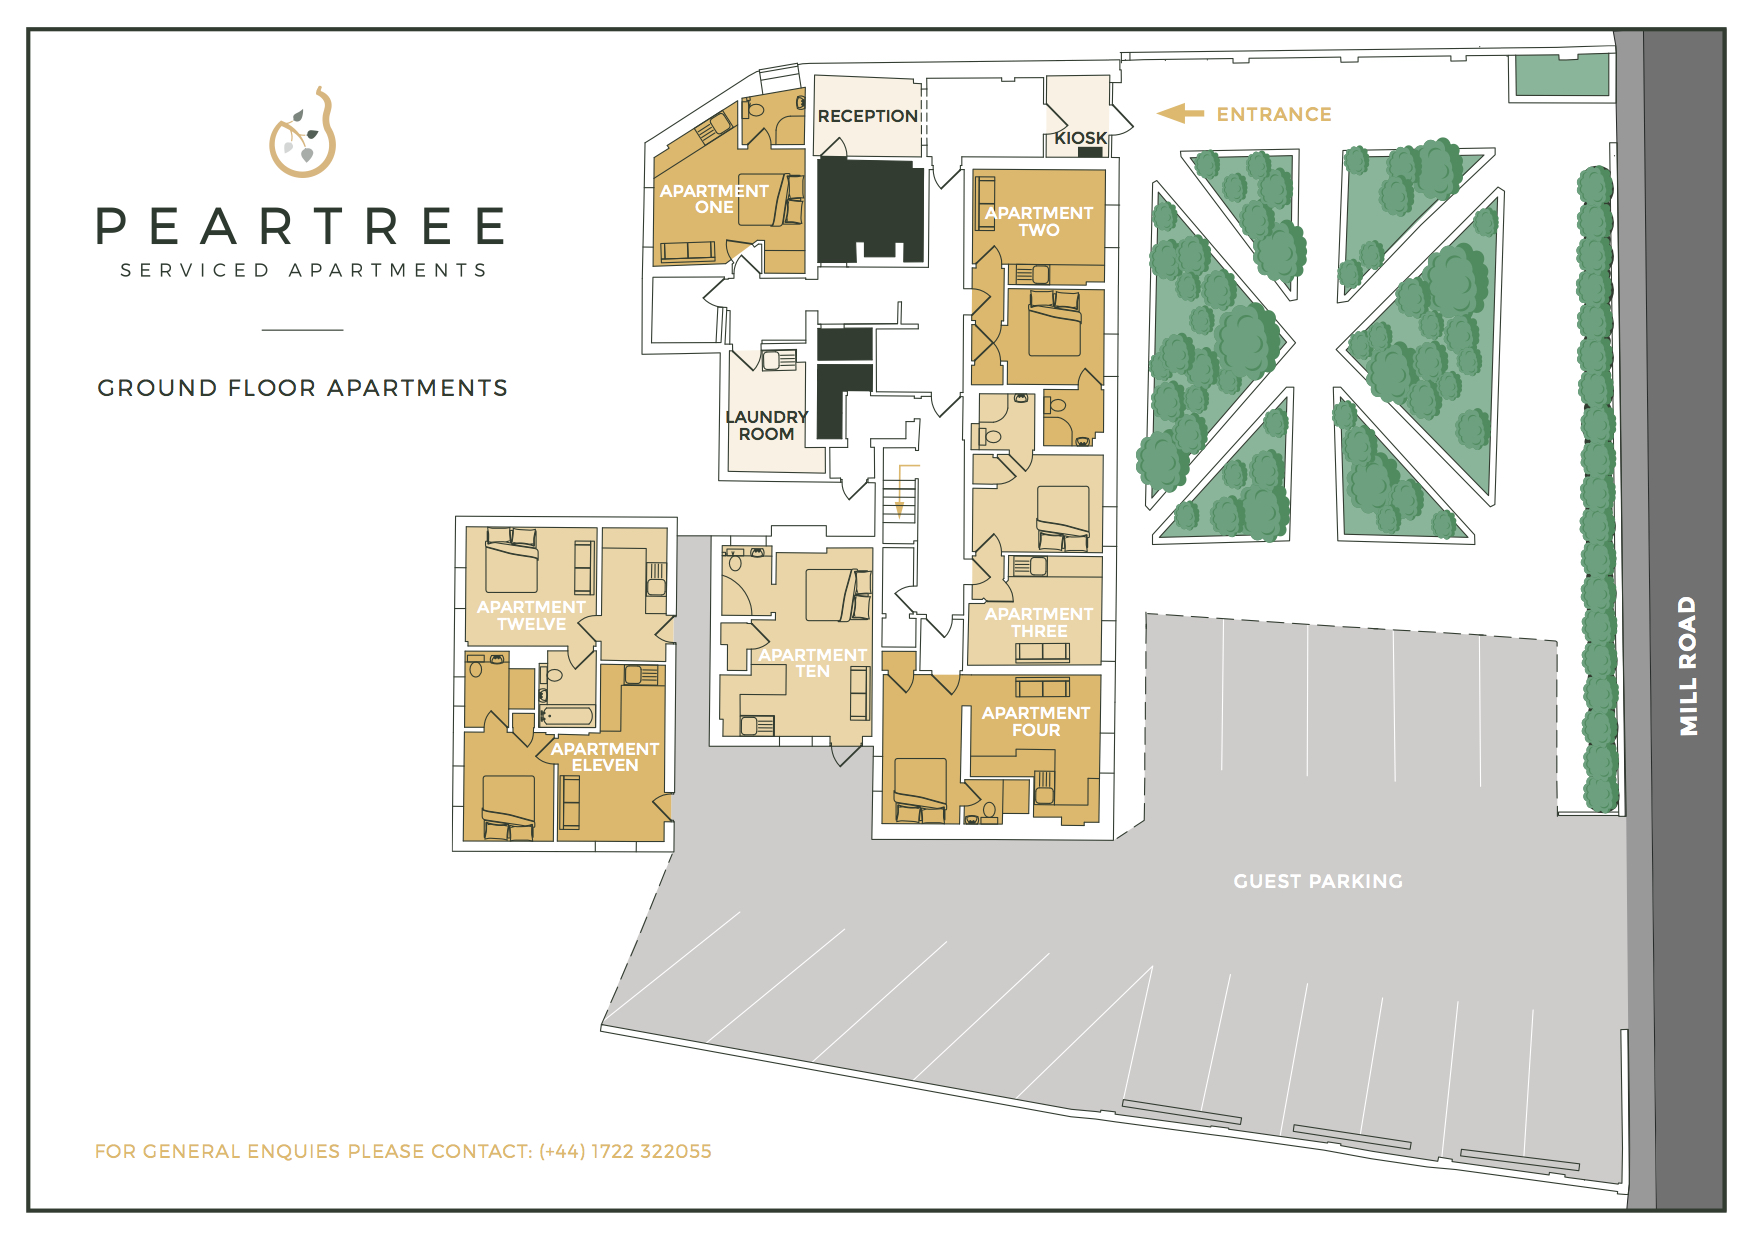 Peartree Ground Floor Apartments